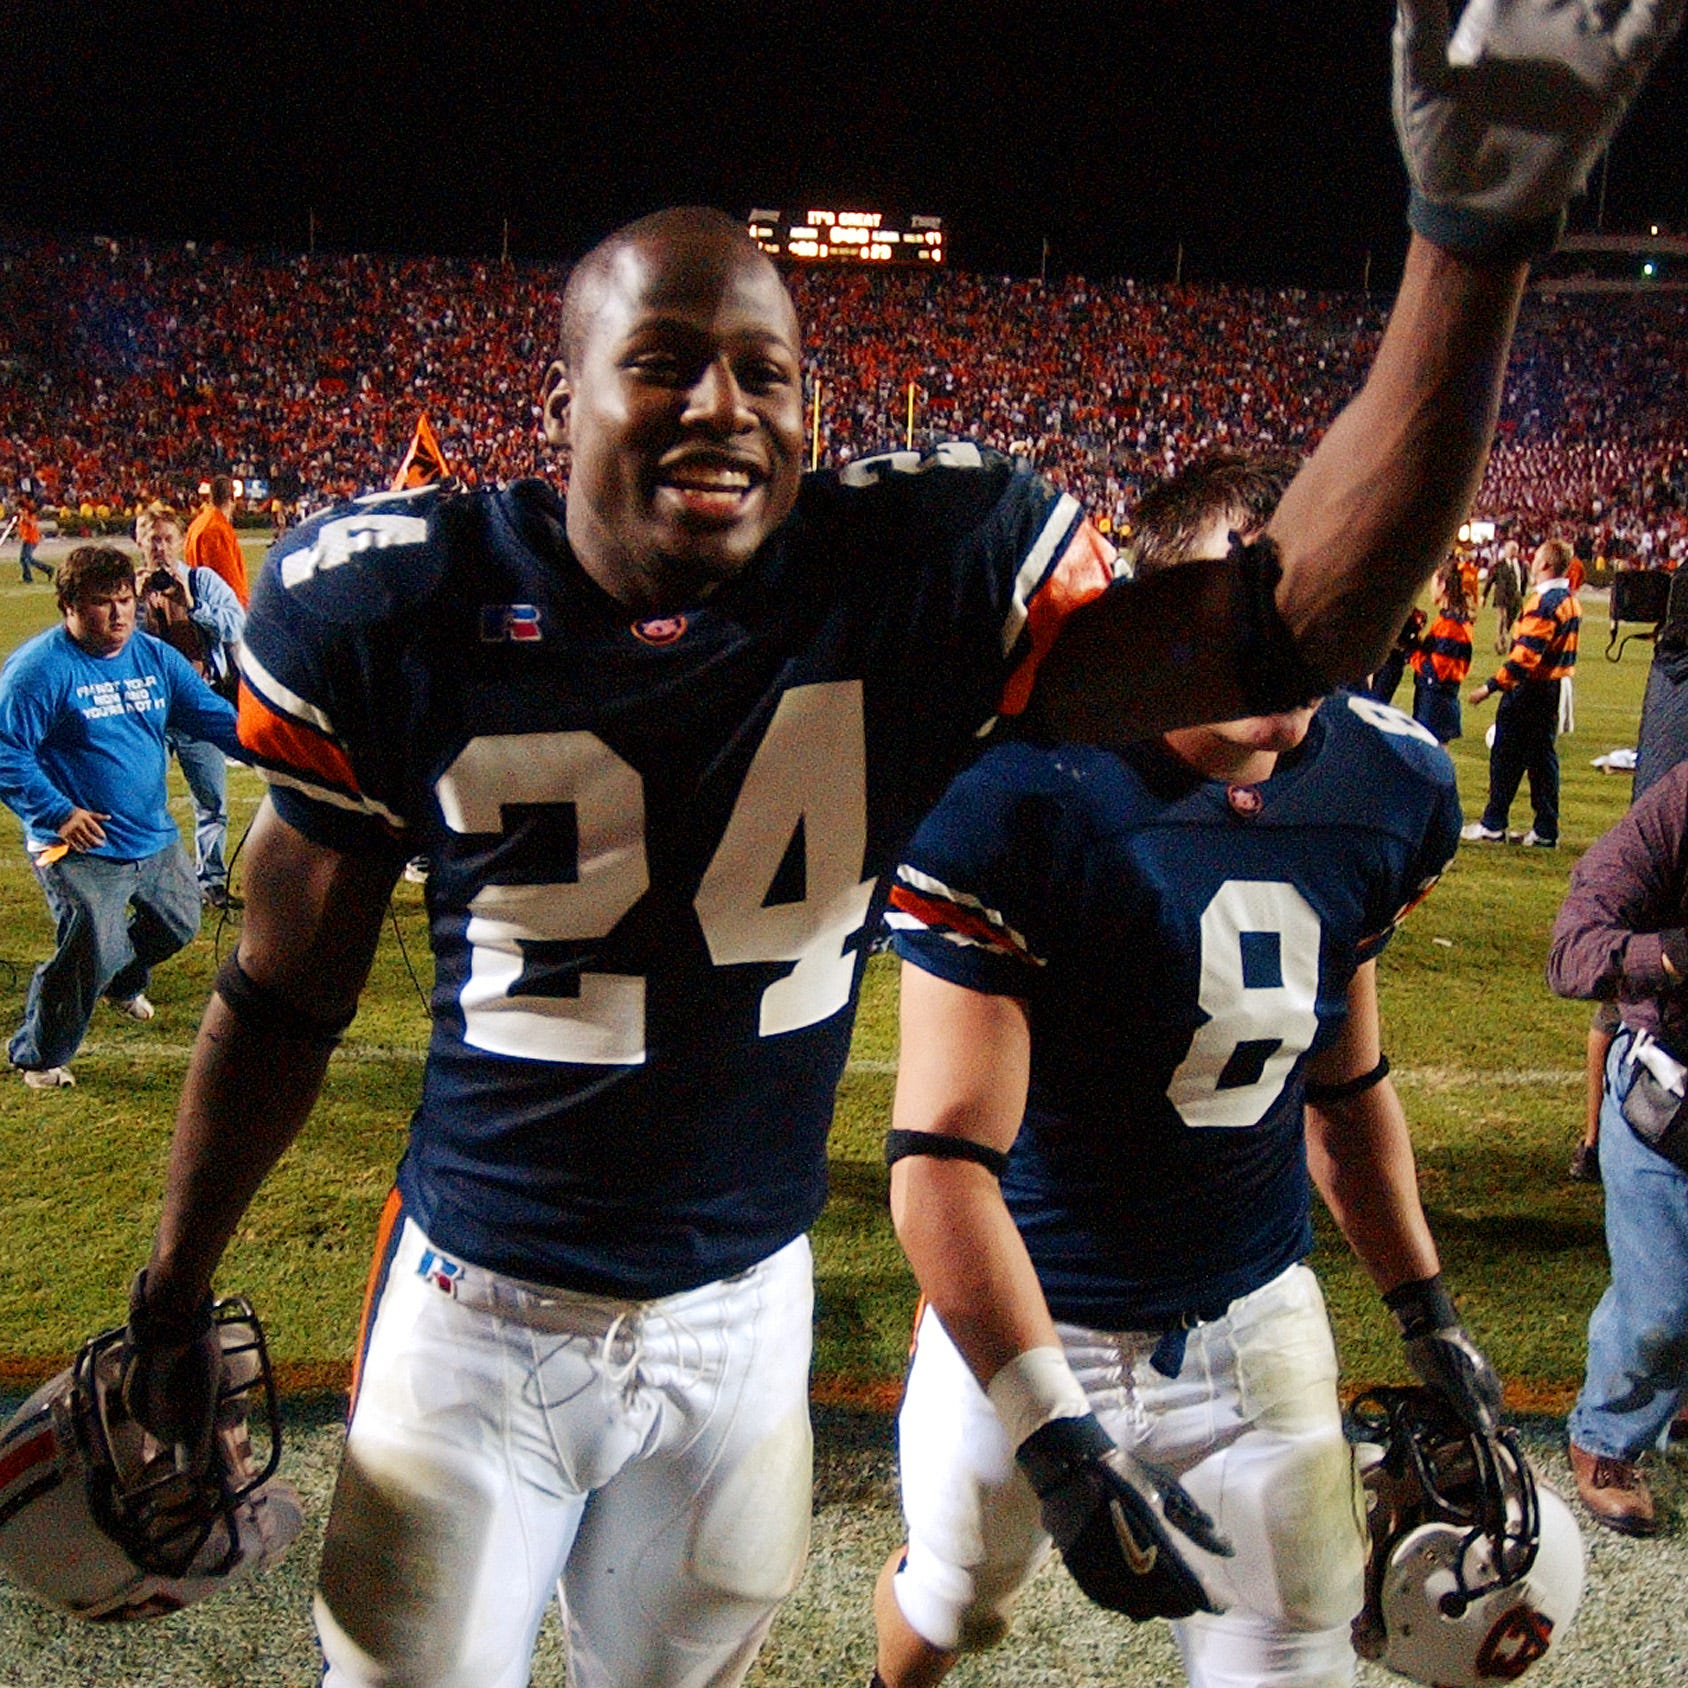 First-time Auburn assistant Cadillac Williams a 'rising star' as coach and recruiter